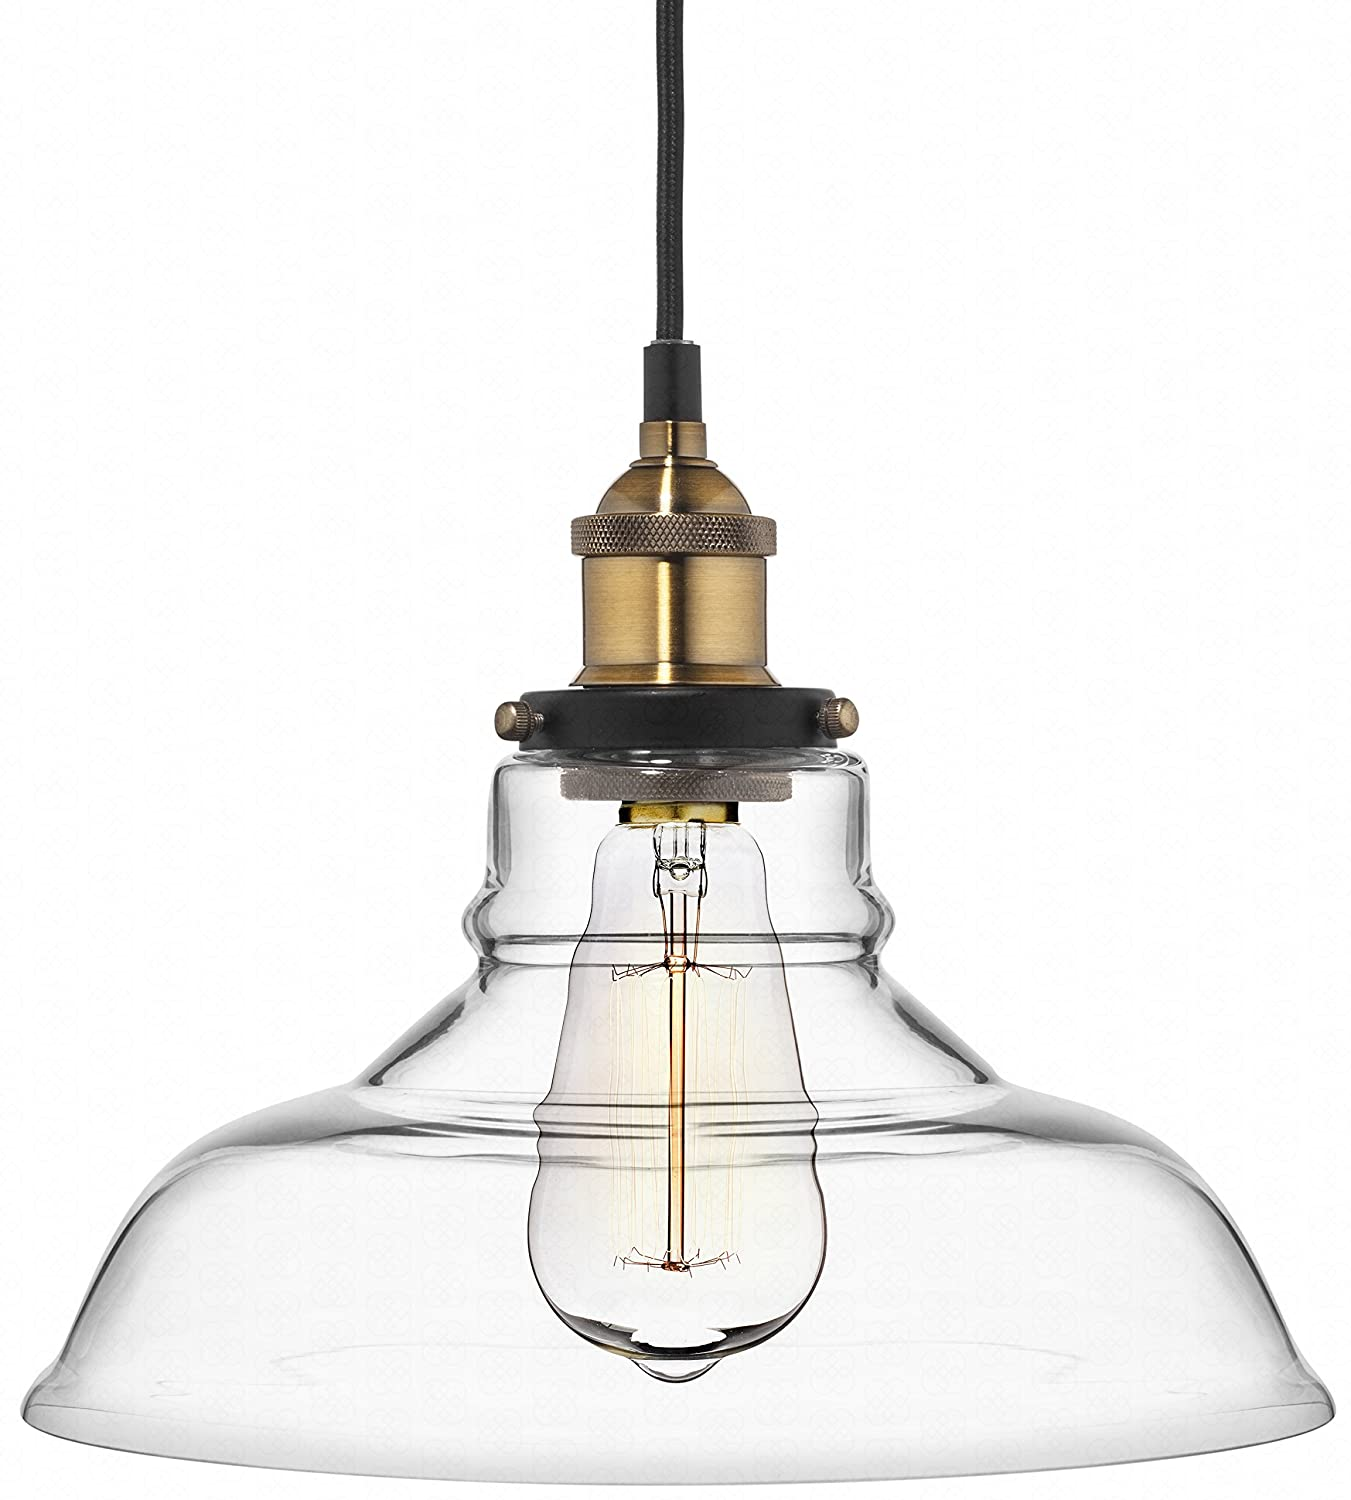 lighting pendants kitchen. Farmhouse Clear Glass Shade Ceiling Pendant Lighting, Kitchen Chandelier Style With Brass Fixture By Deneve - Amazon.com Lighting Pendants